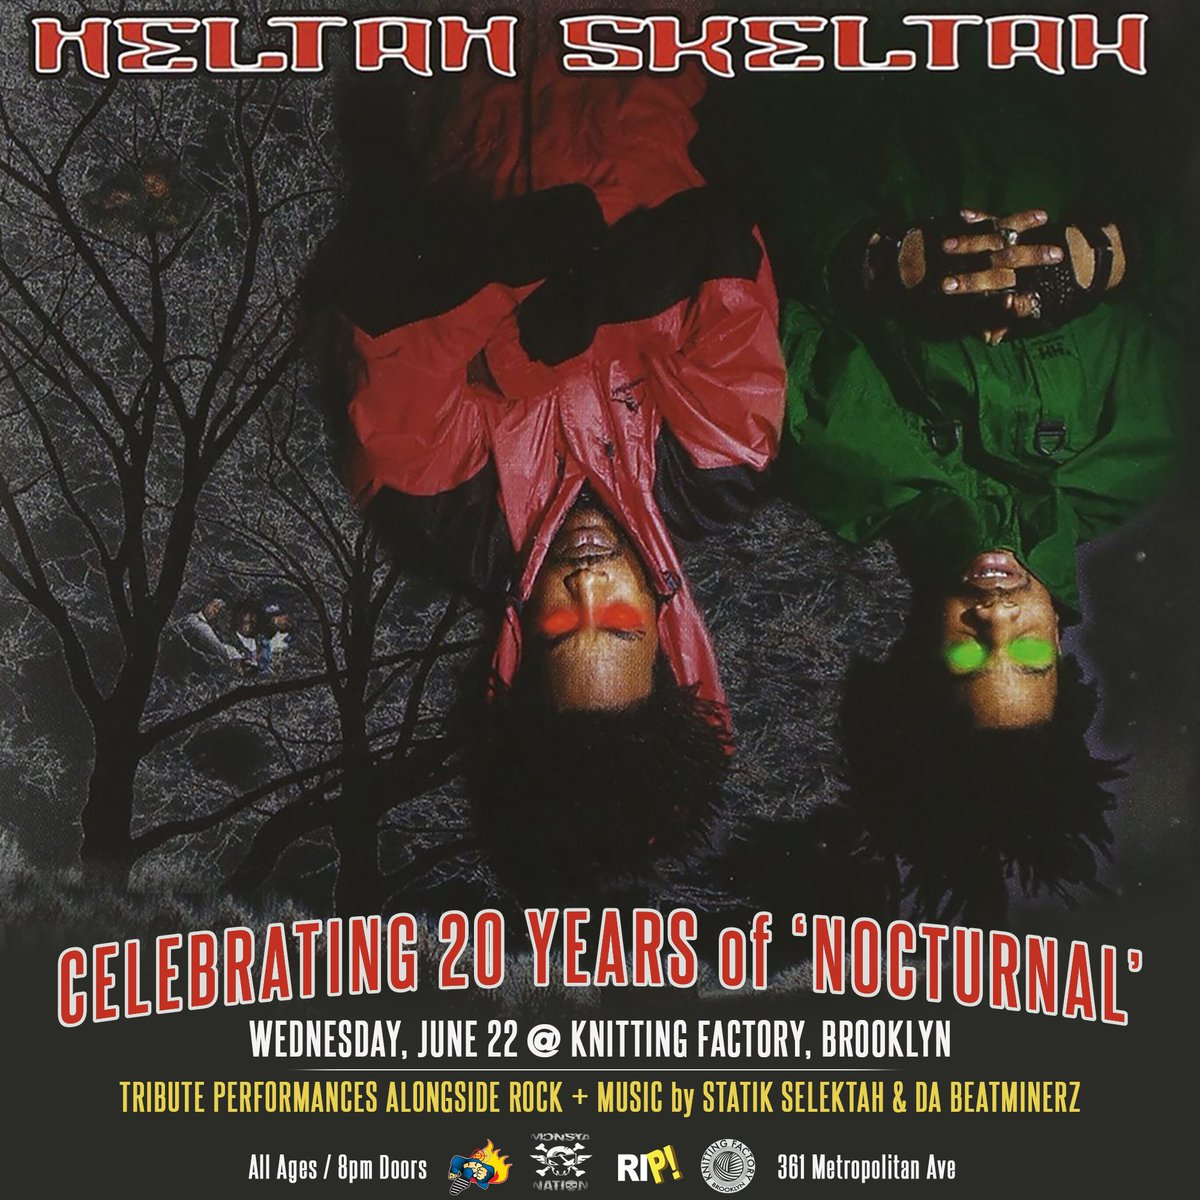 On 6.22- #heltahskeltah 20th anniversary of 'Nocturnal'  @_ROCKNESS_ @SeanPrice https://t.co/lwdO9EC9gY https://t.co/mFIKXRgA0X